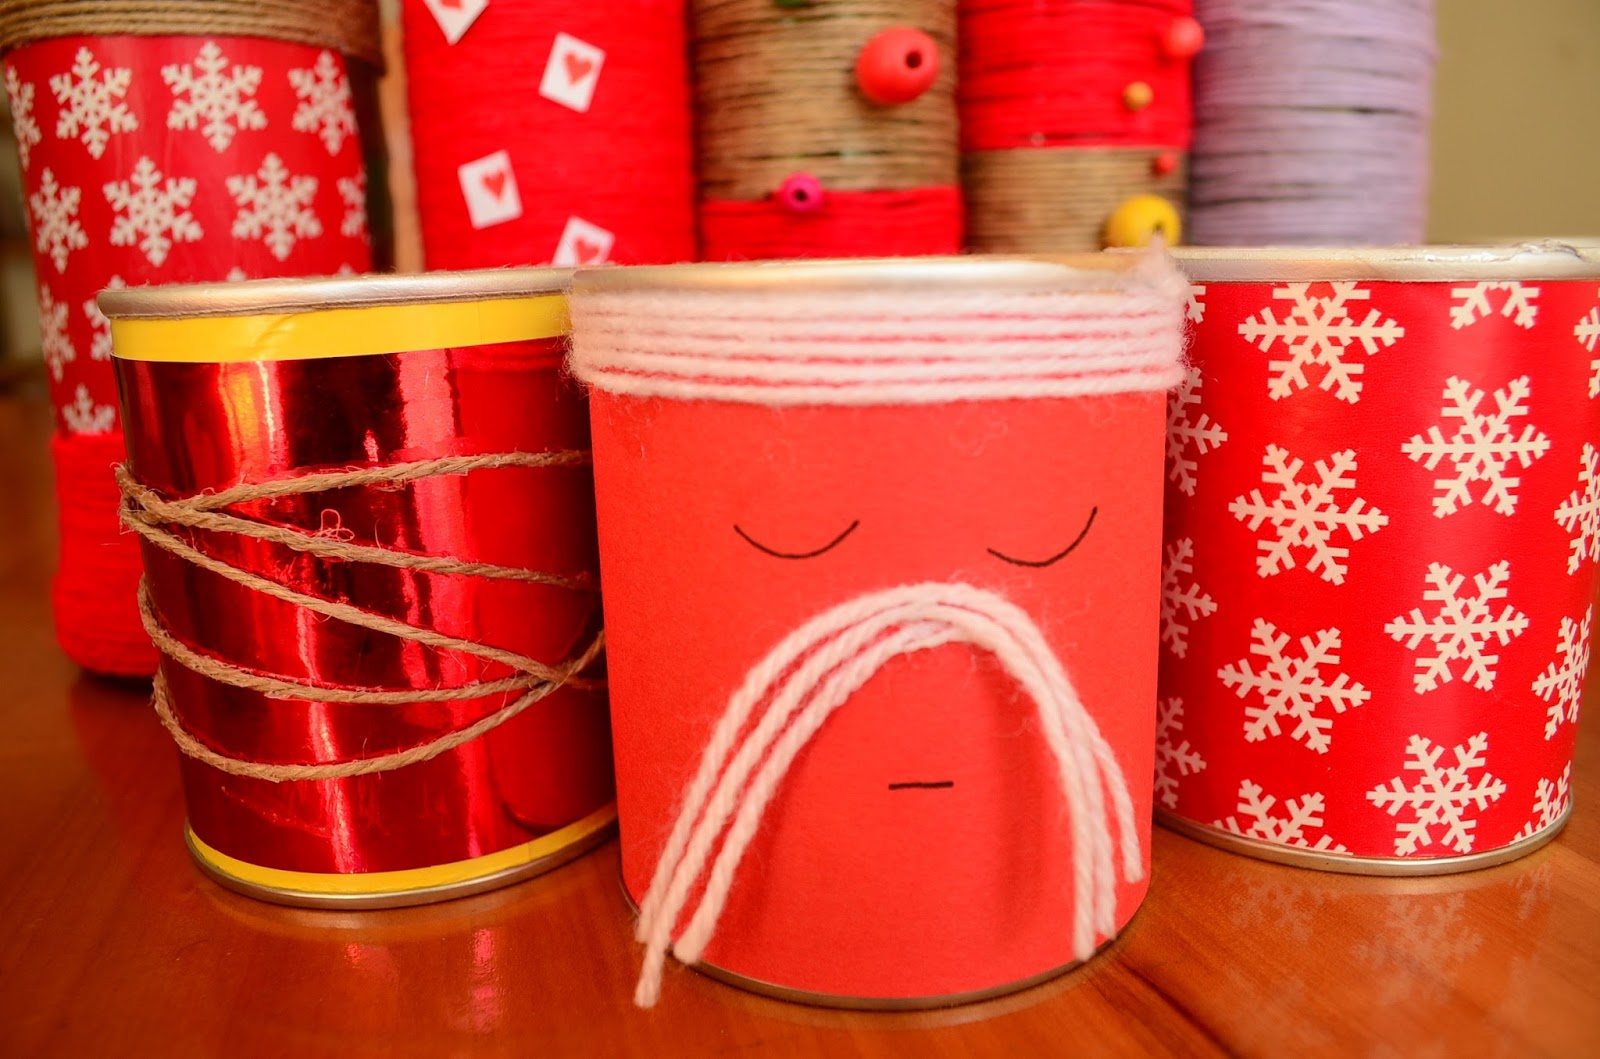 The Practical Mom: Recycling Leftover Christmas Stuff